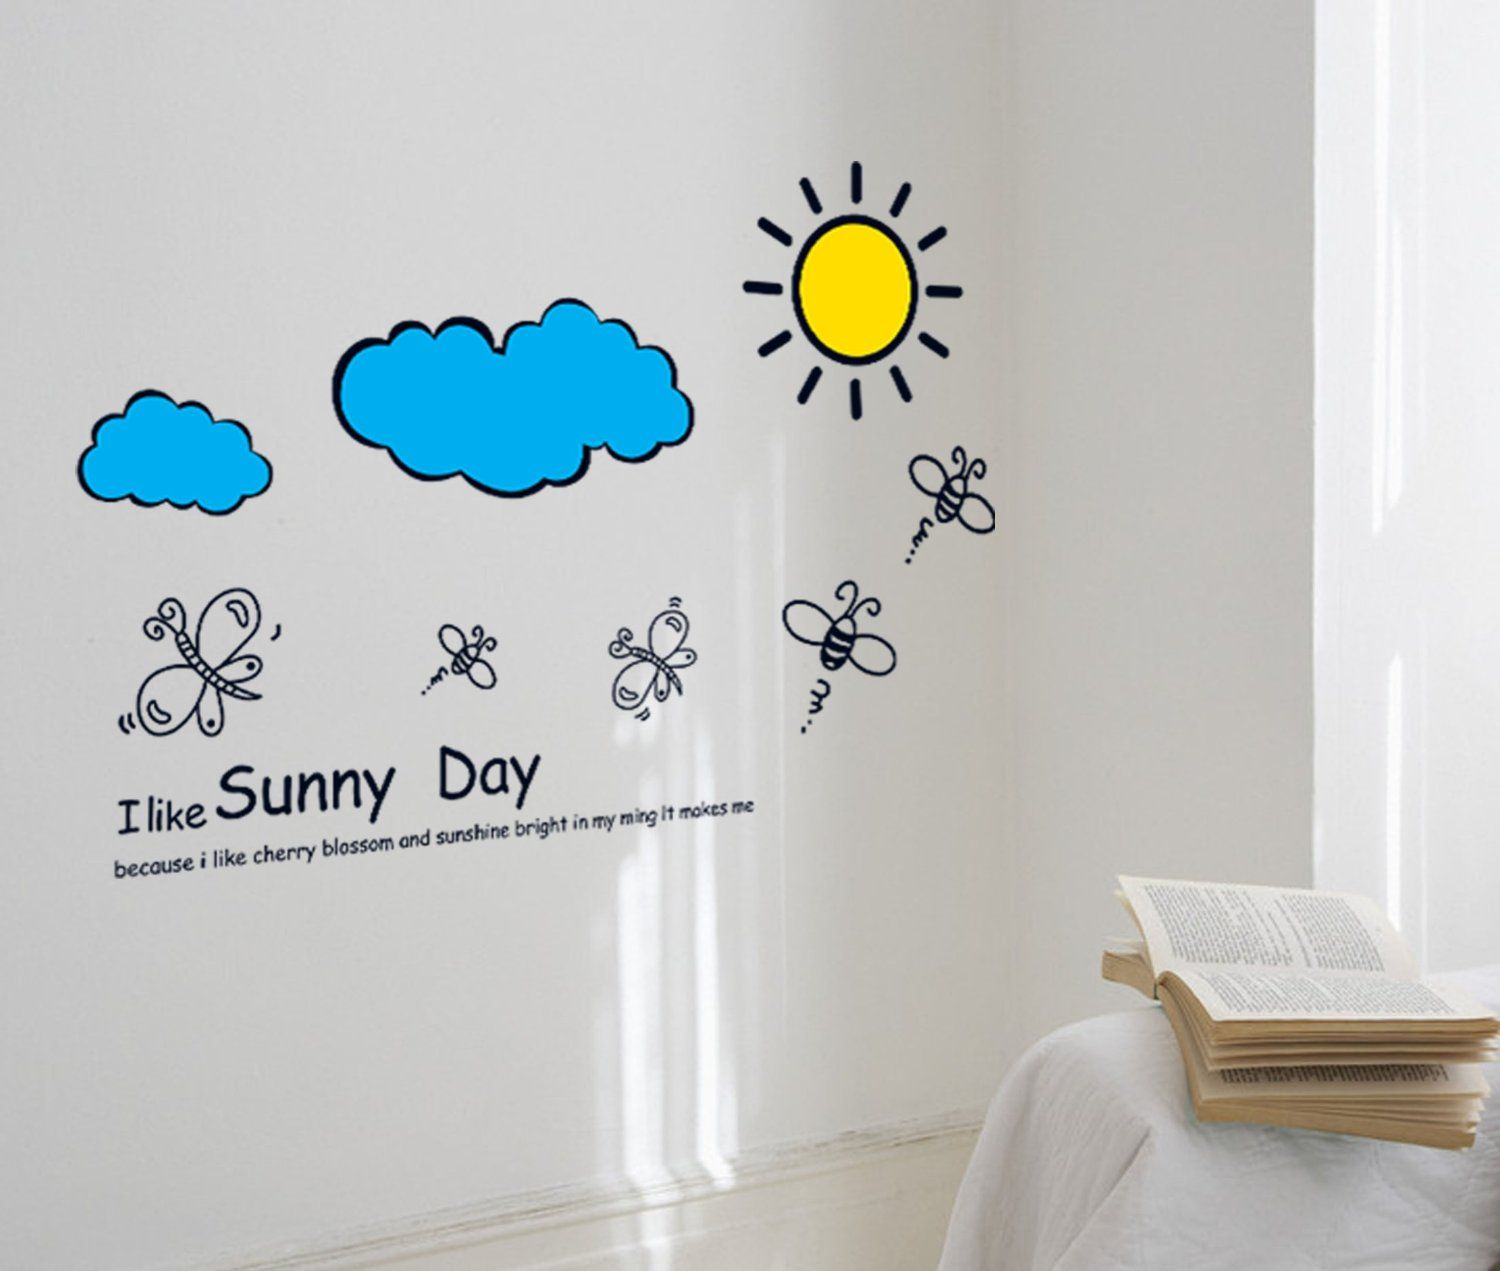 Modern Wall Decals Yyone I Like Sunny Day Quote Sun Cloud Dragonfly Bee Wall Decor Decal For Home Wall Stickers Kids Wall Decor Stickers Wall Decor Decals